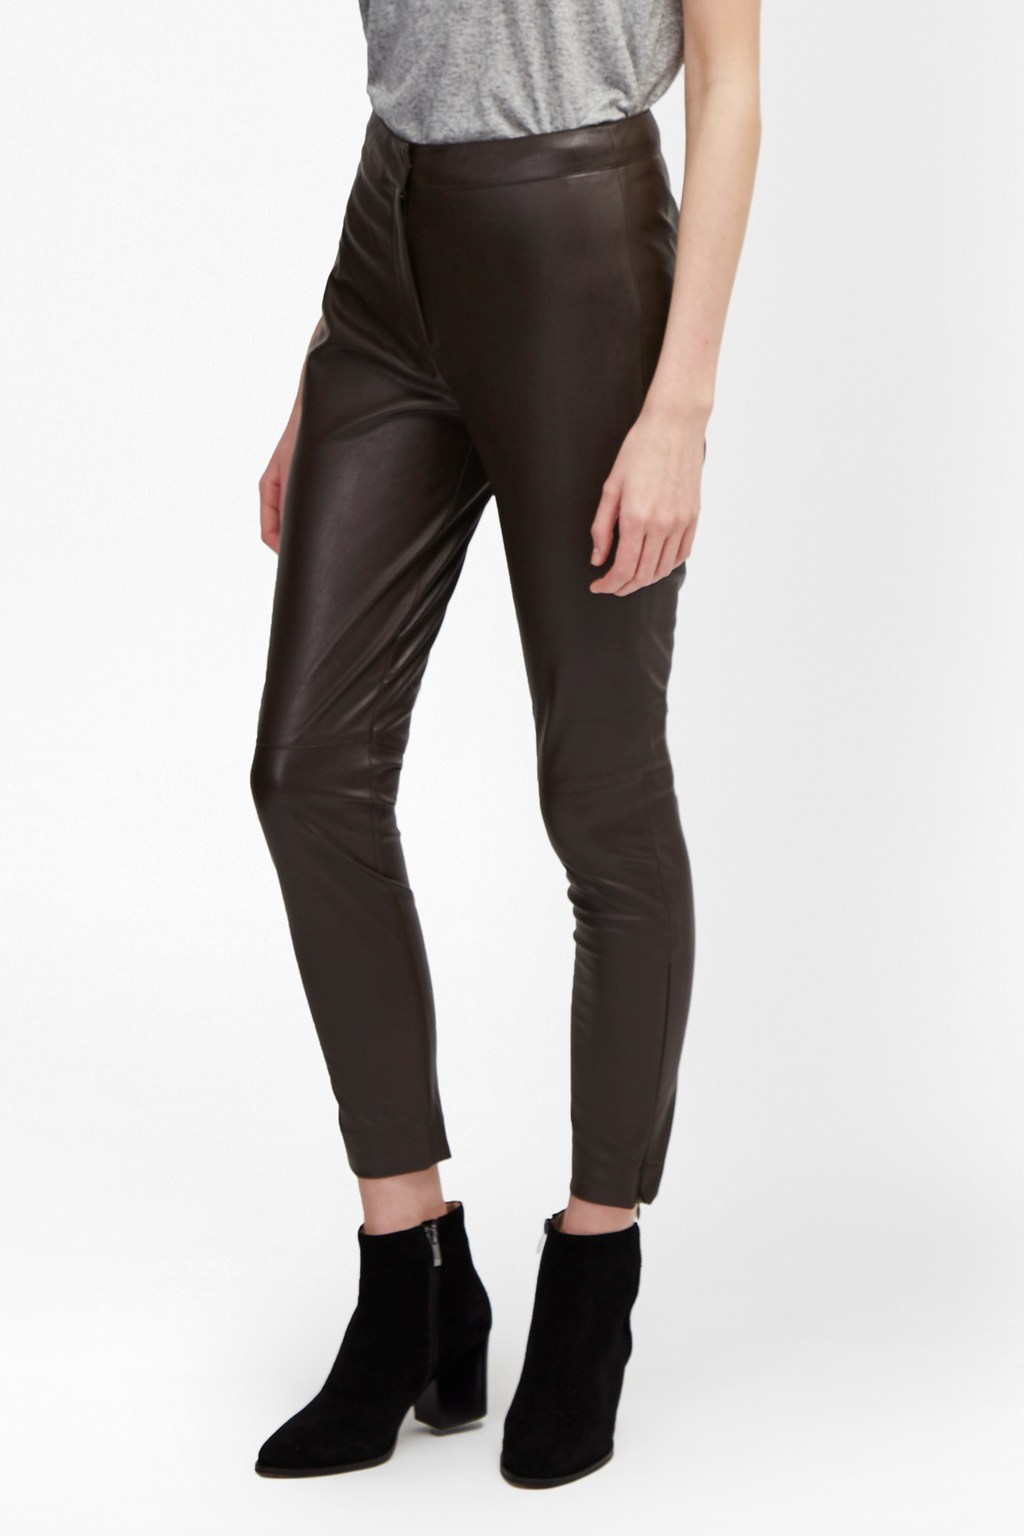 e9133508f20 Atlantic Faux Leather Trousers. loading images... loading images.